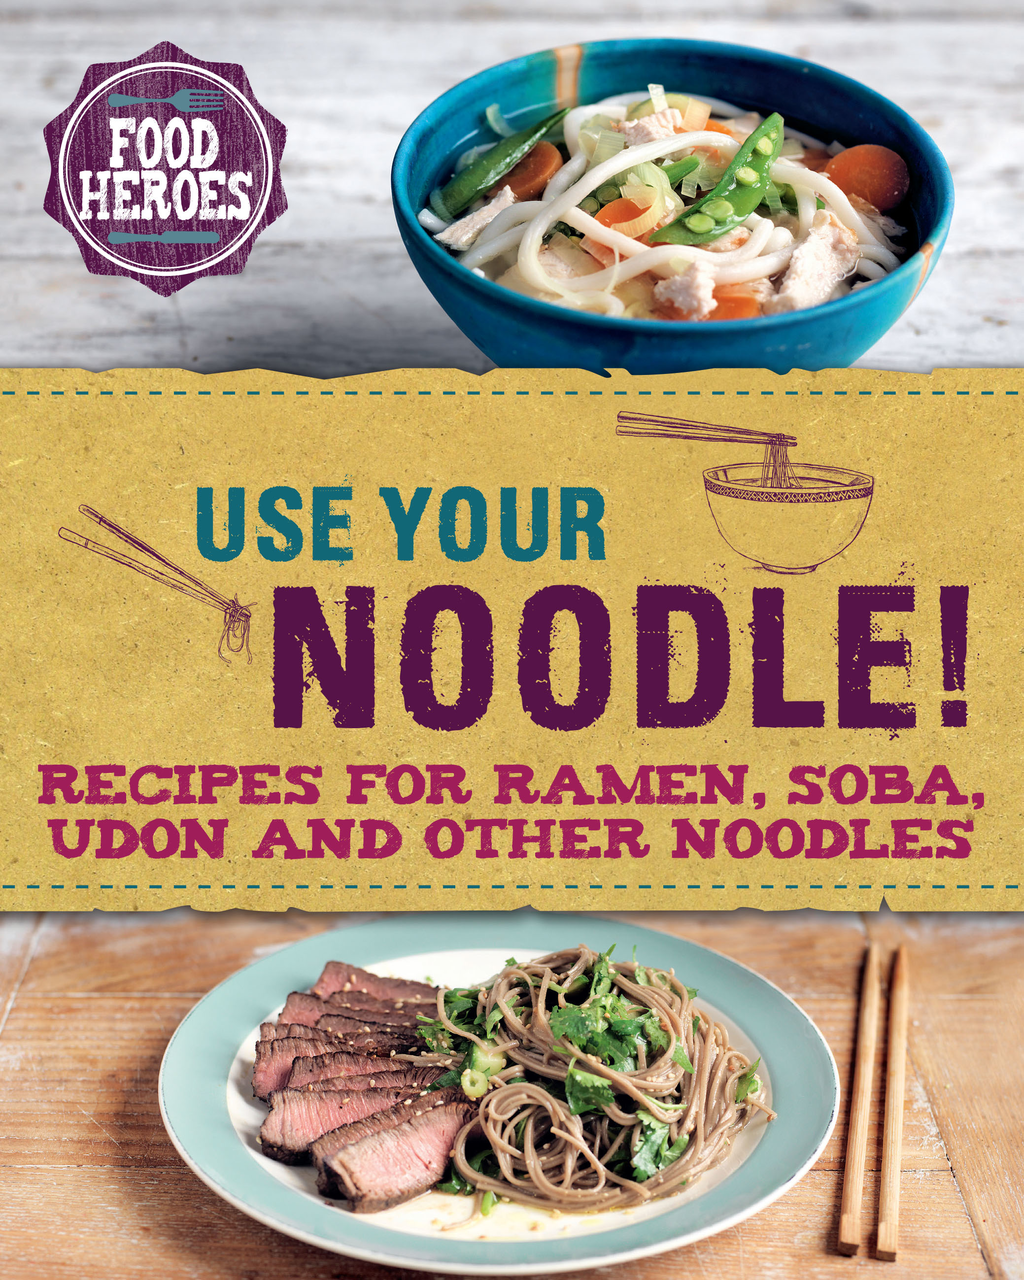 Use Your Noodle! Recipes for Ramen,  Soba,  Udon and other noodles